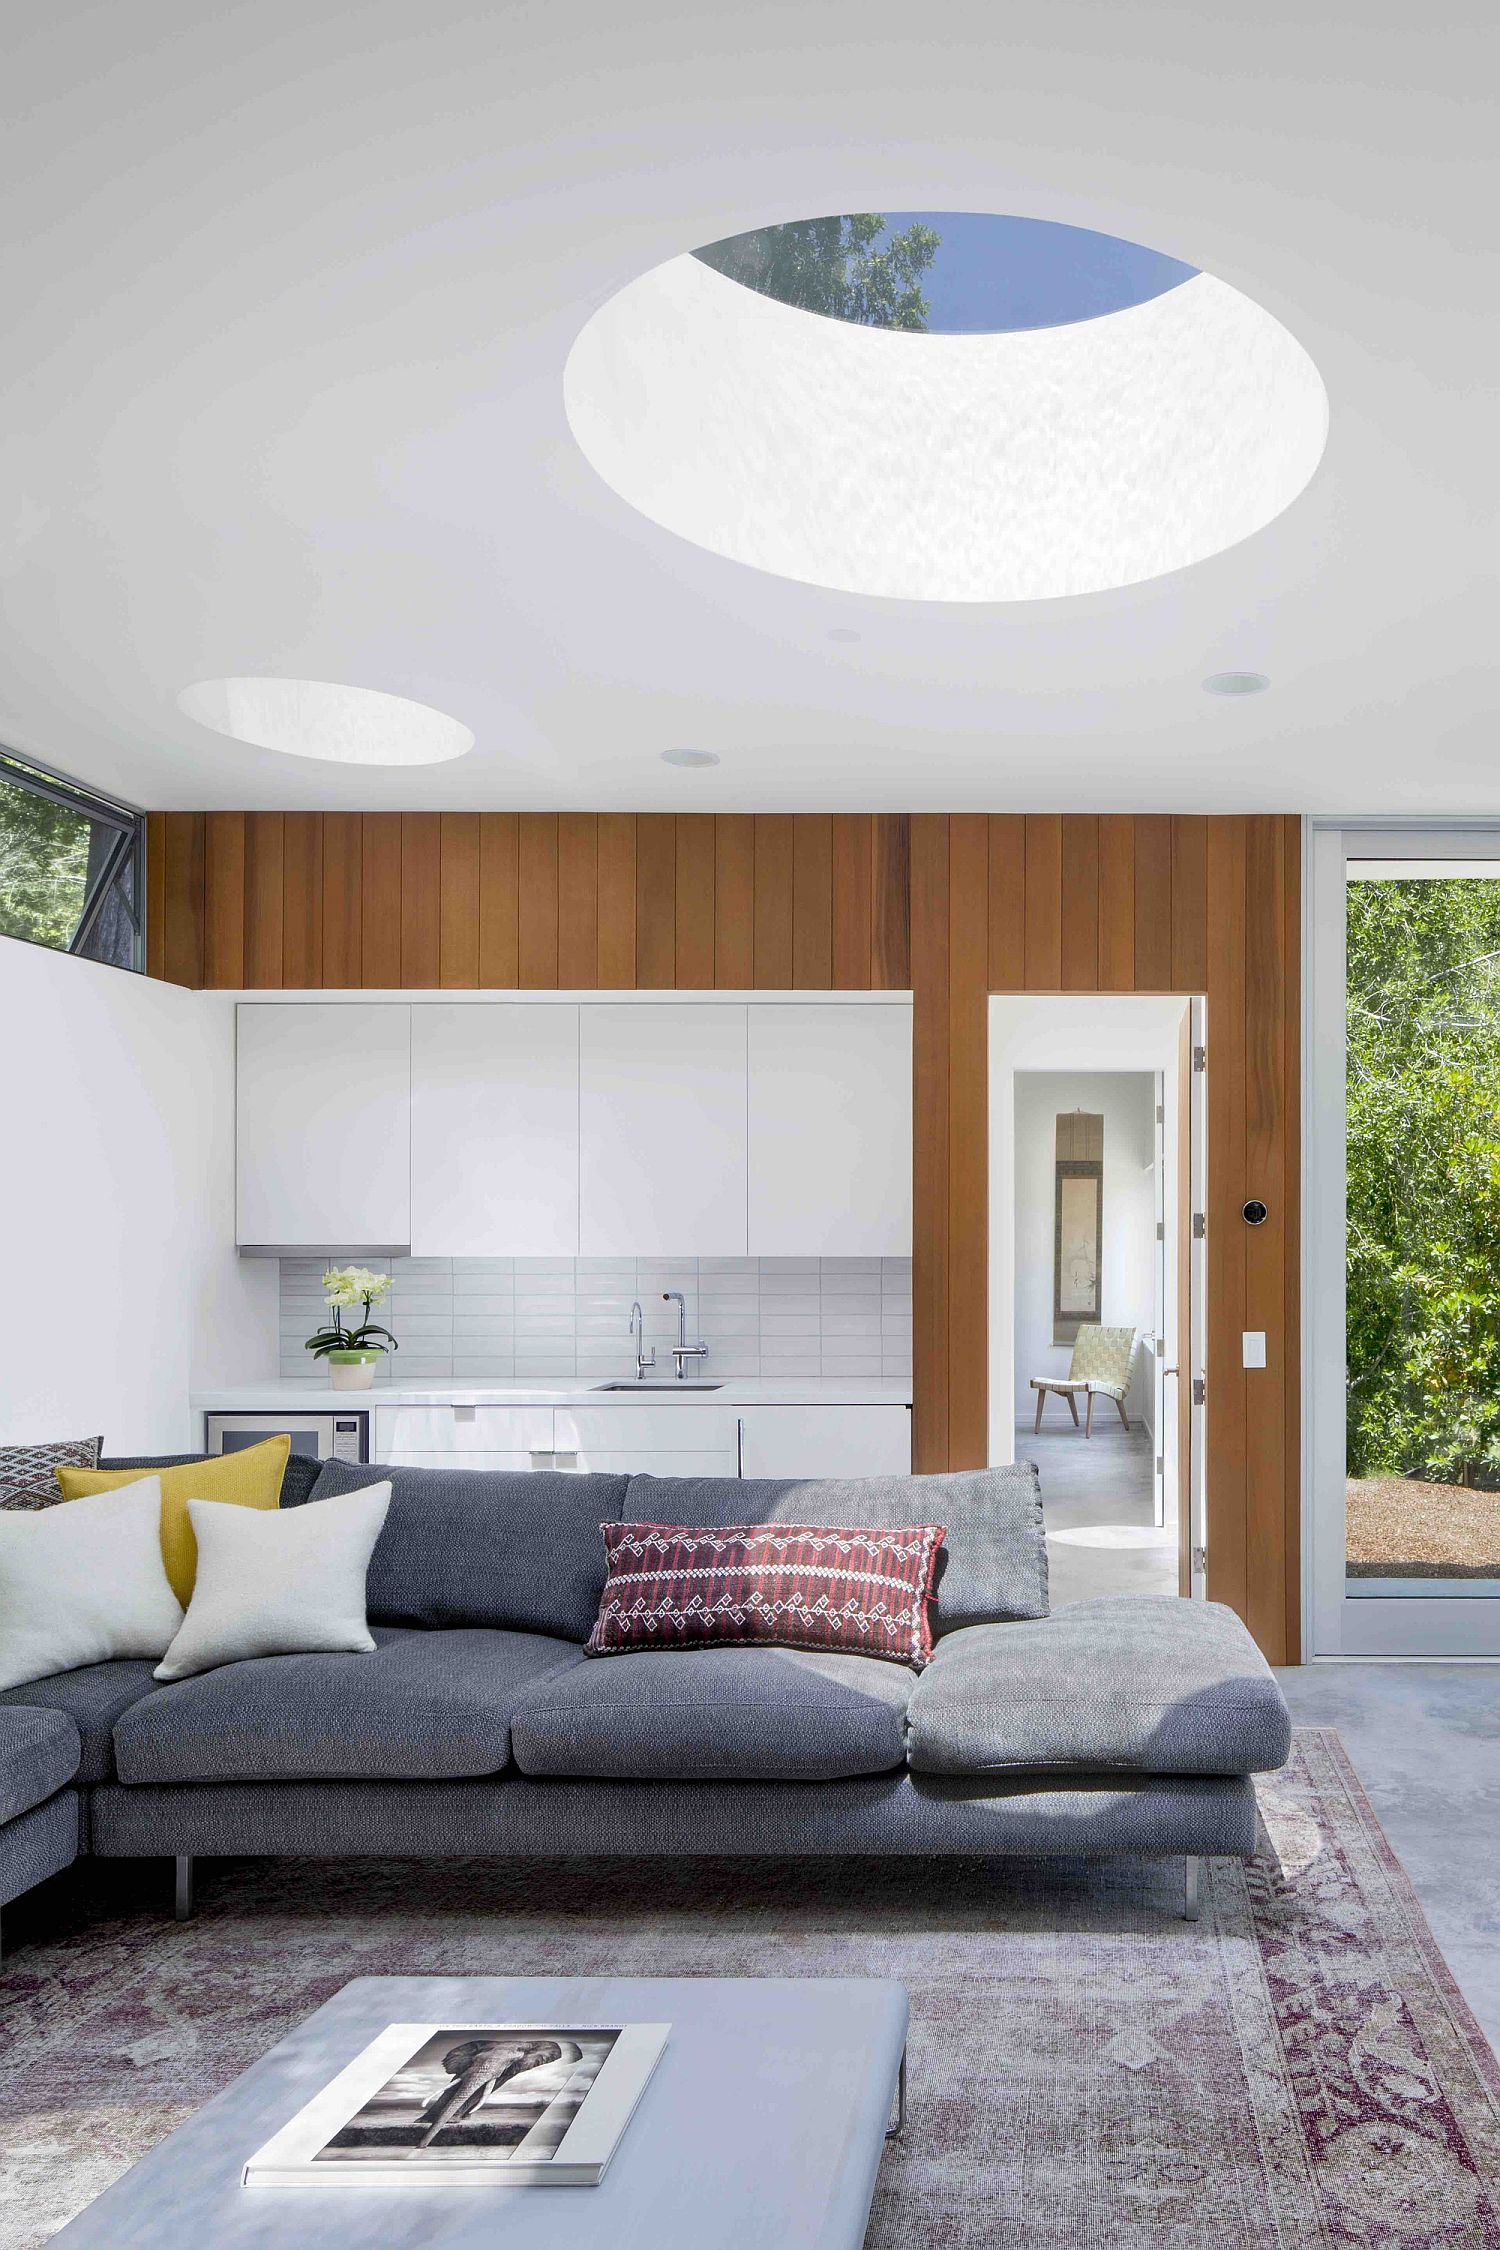 Smart interior of the guestouse with gray sectional and white backdrop